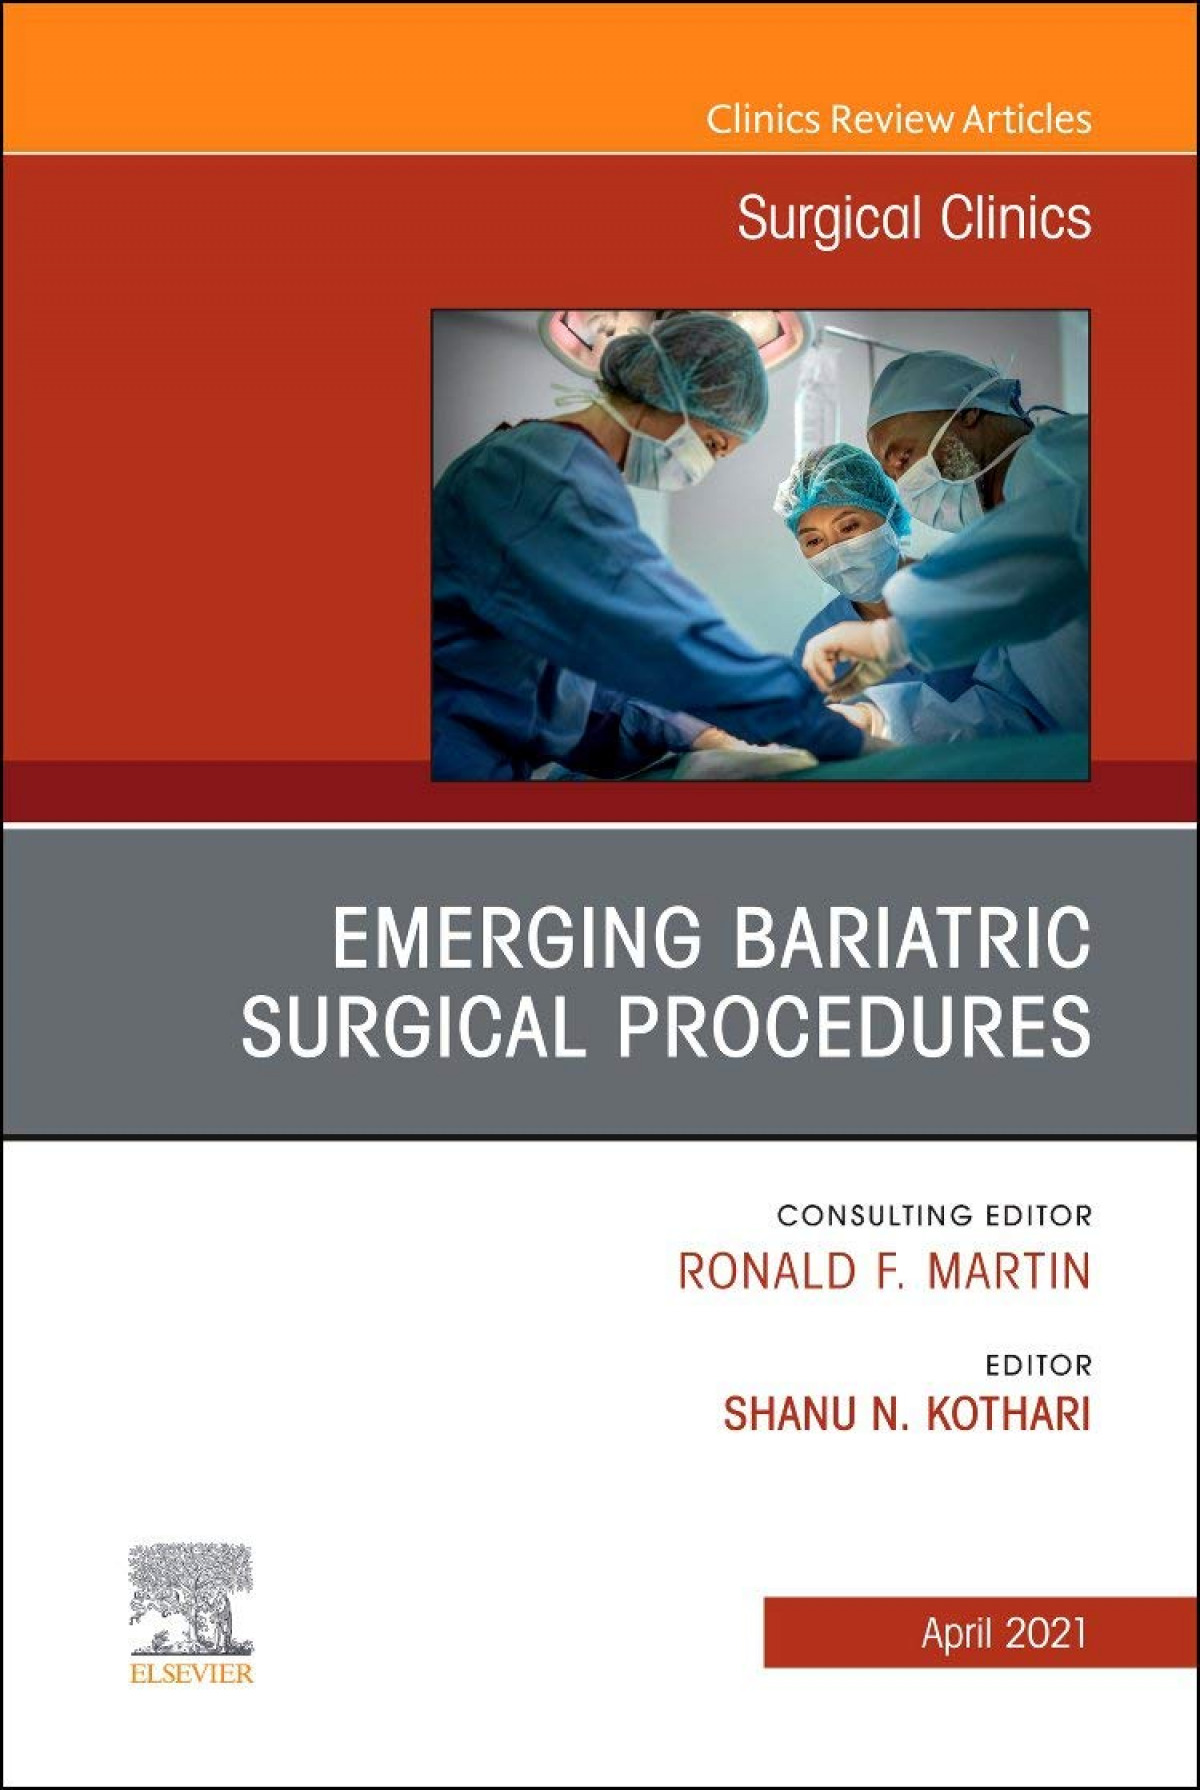 Emerging Bariatric Surgical Procedures, An Issue of Surgical Clinics, Volume 101